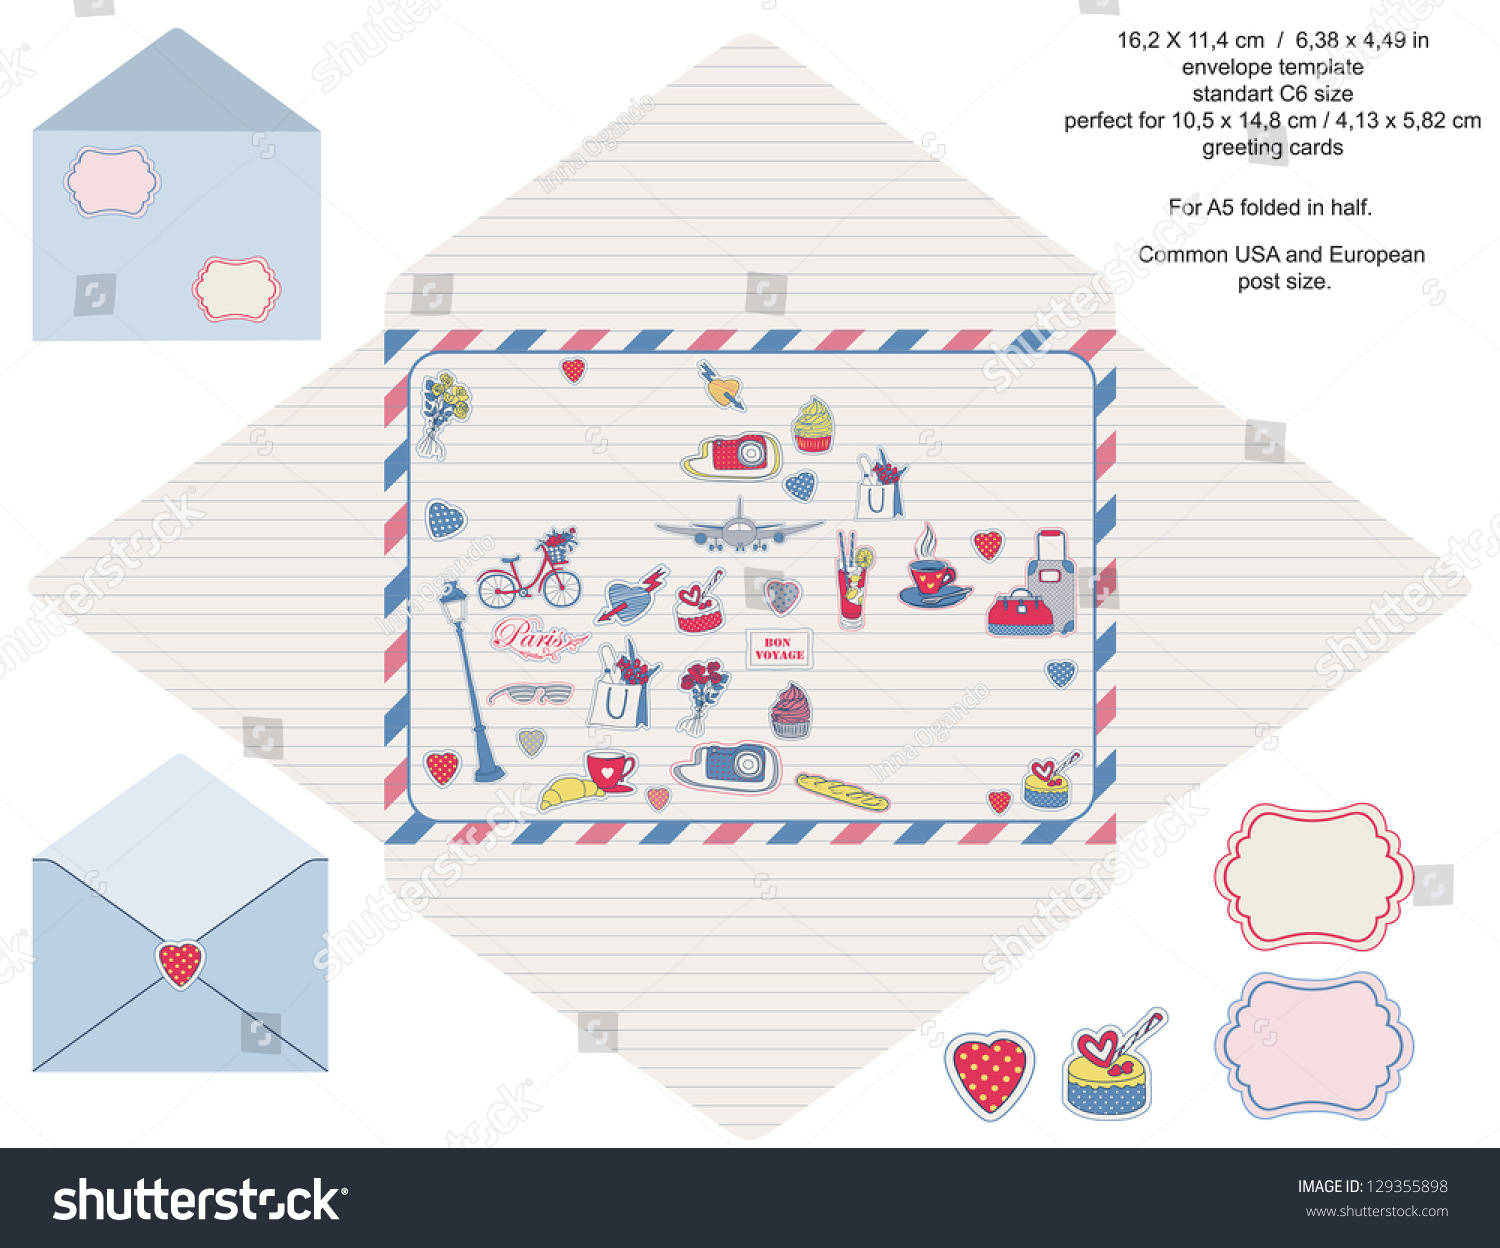 envelope designer template paris travel related icons blank label included isolated stock. Black Bedroom Furniture Sets. Home Design Ideas